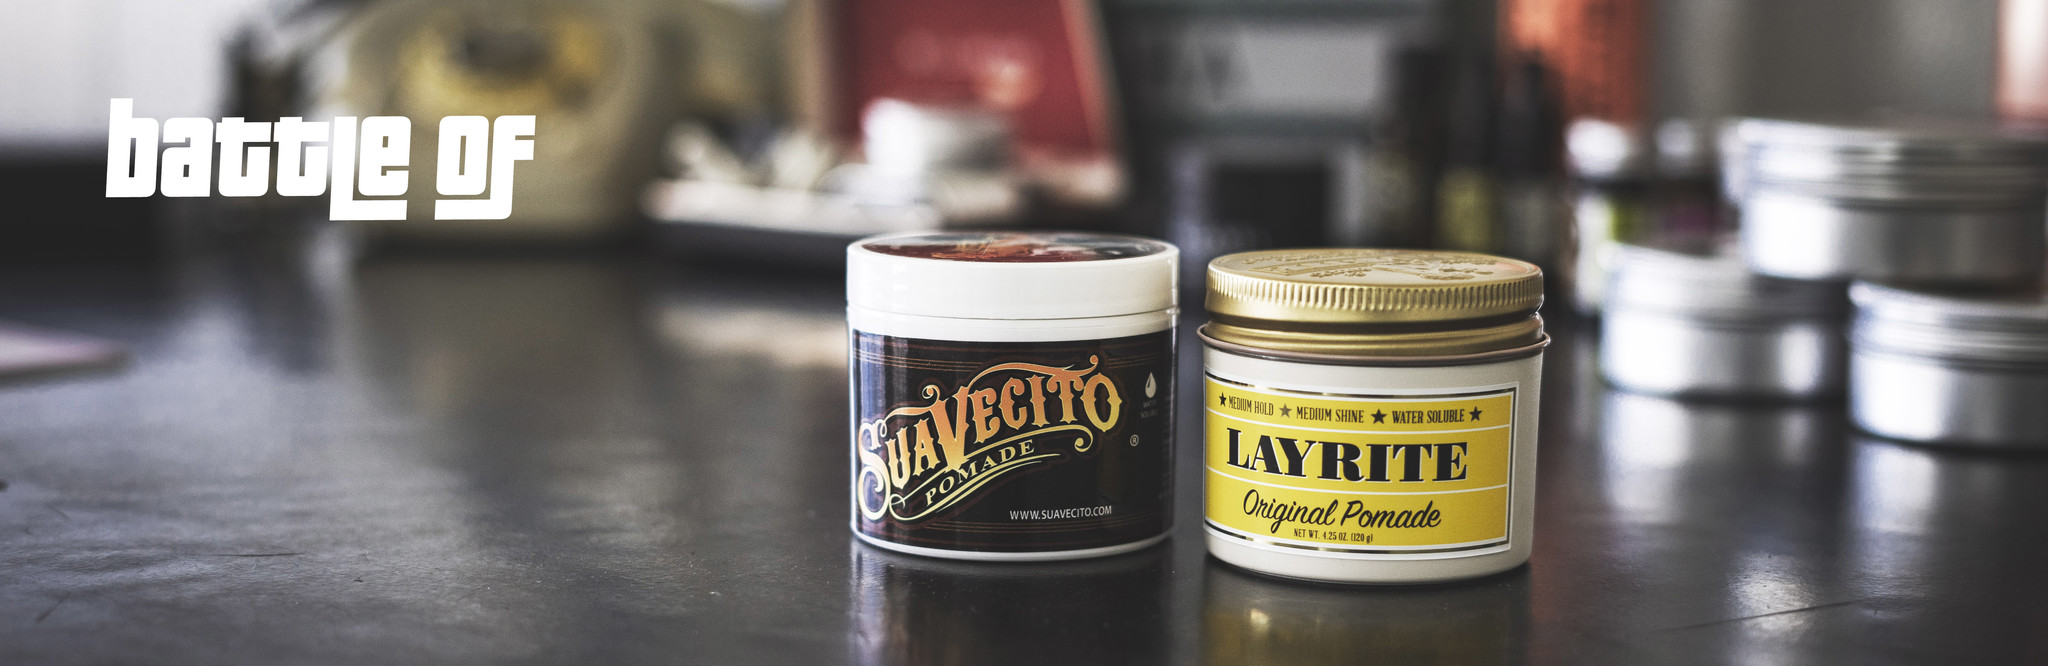 Battle of Pomades | Suavecito vs Layrite